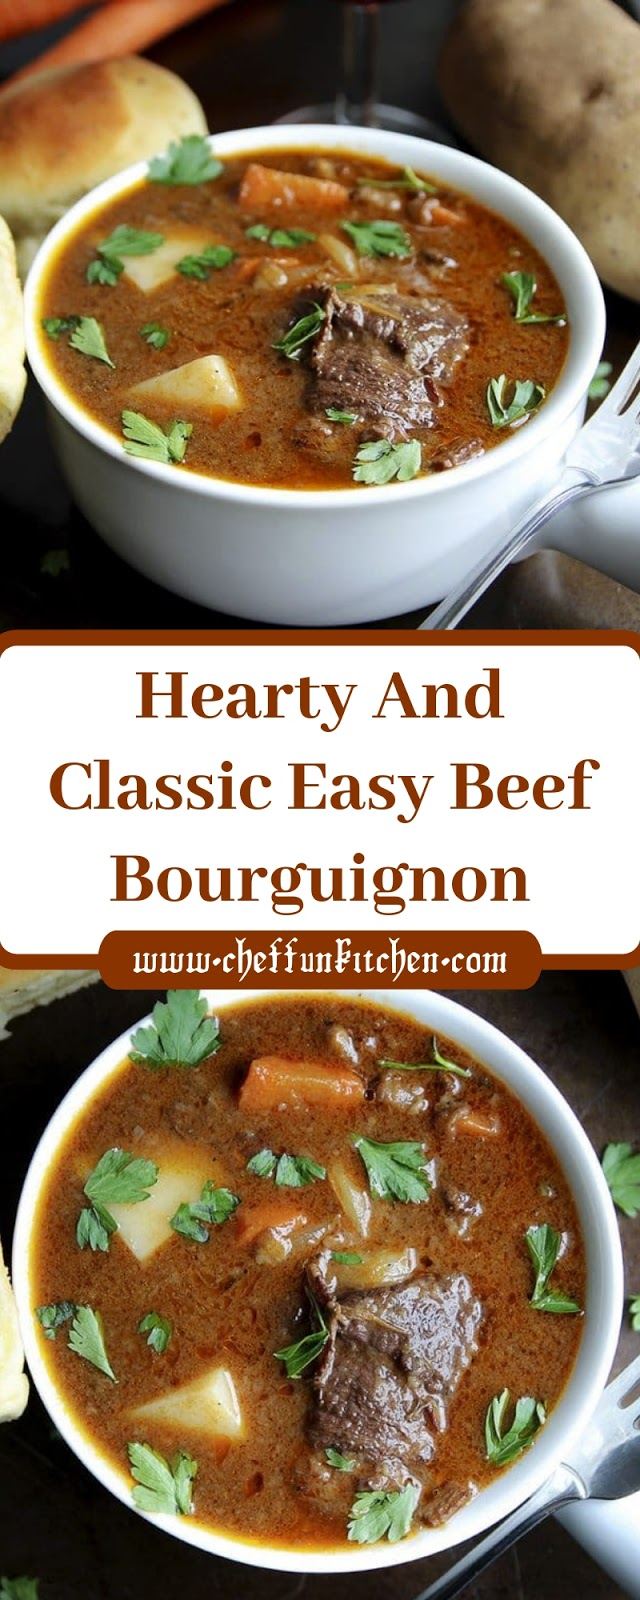 Hearty And Classic Easy Beef Bourguignon